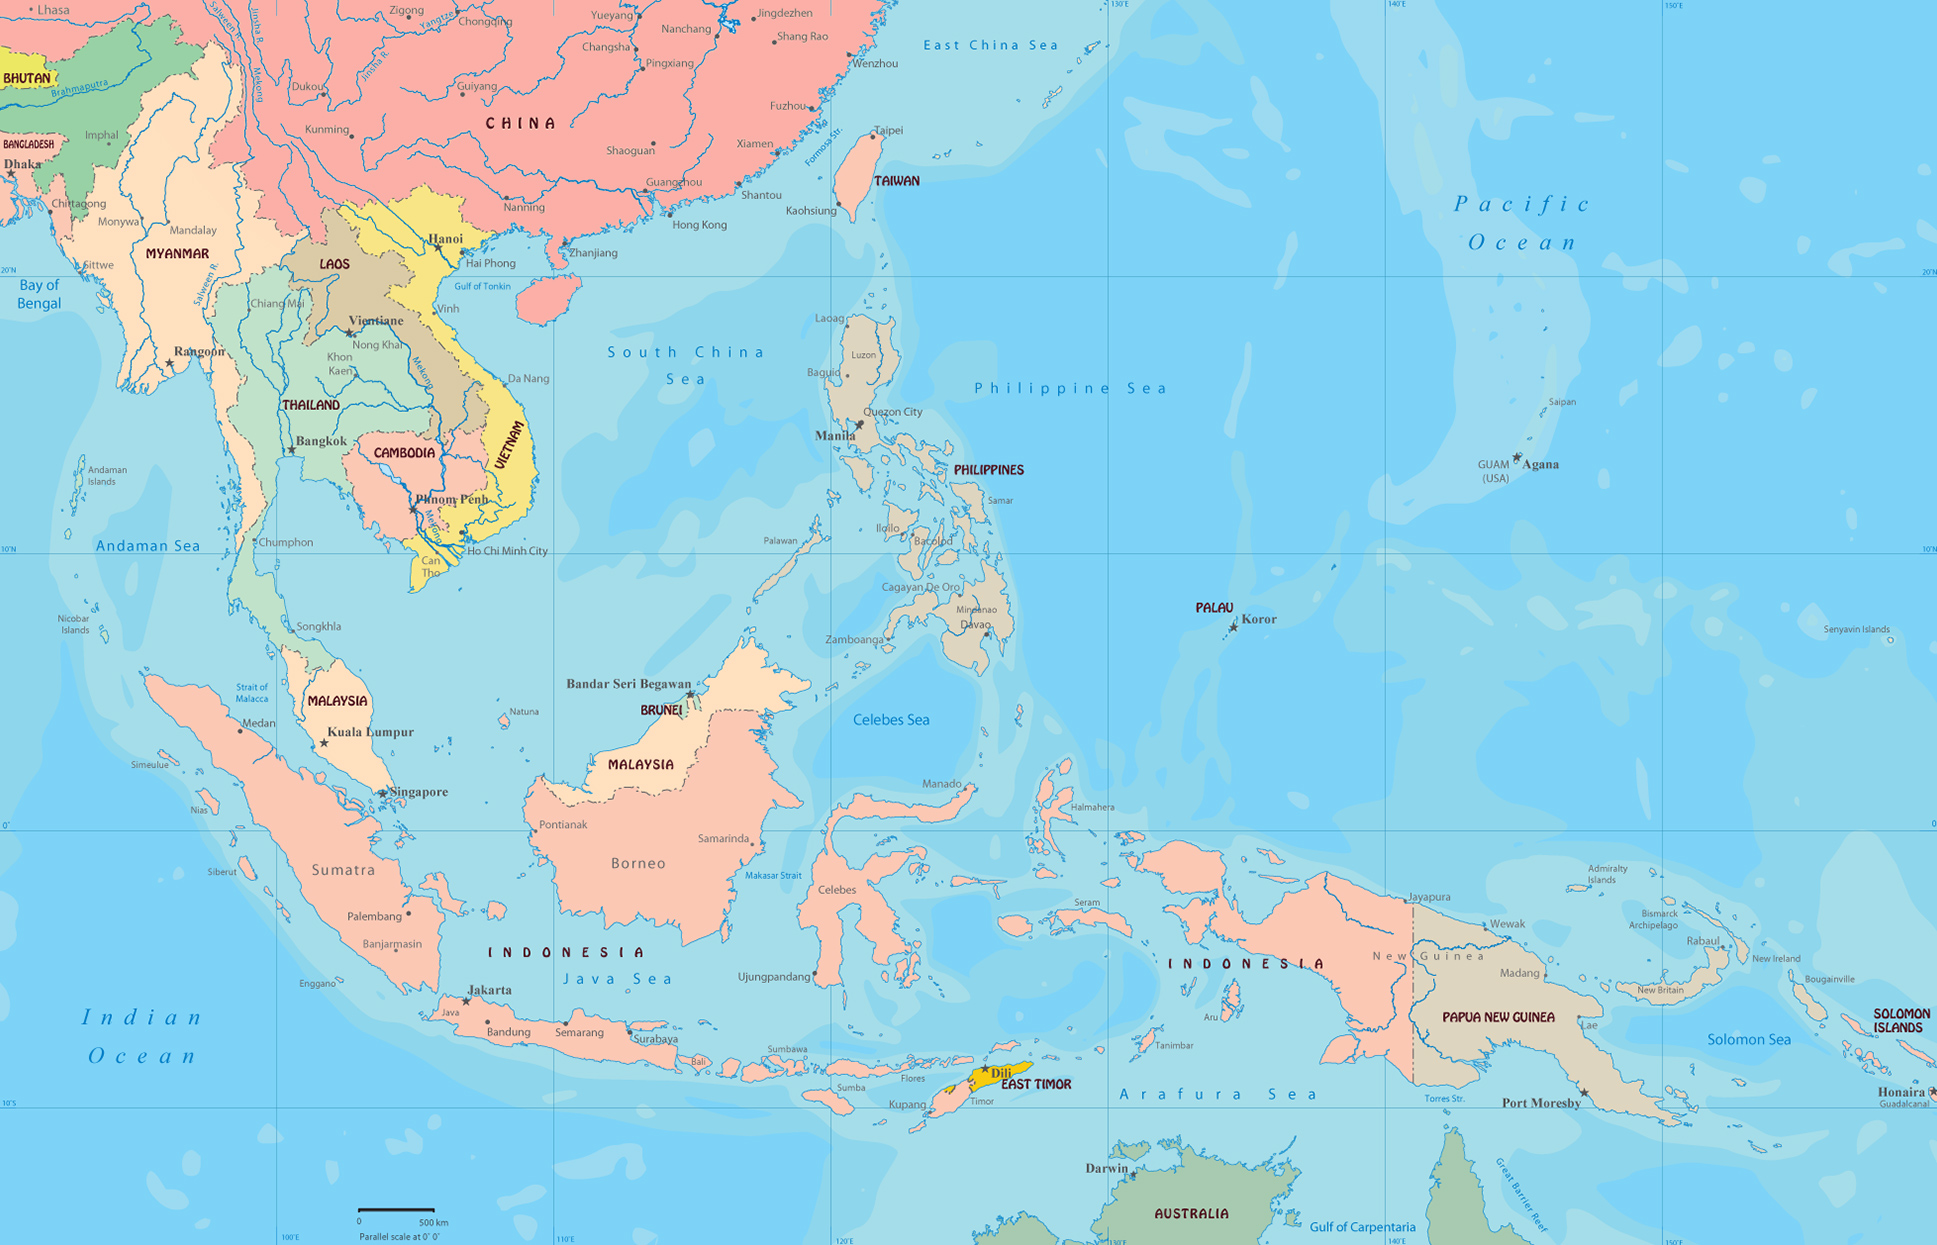 Southeast Asia Map - Indonesia, Malaysia, Philippines, Thailand